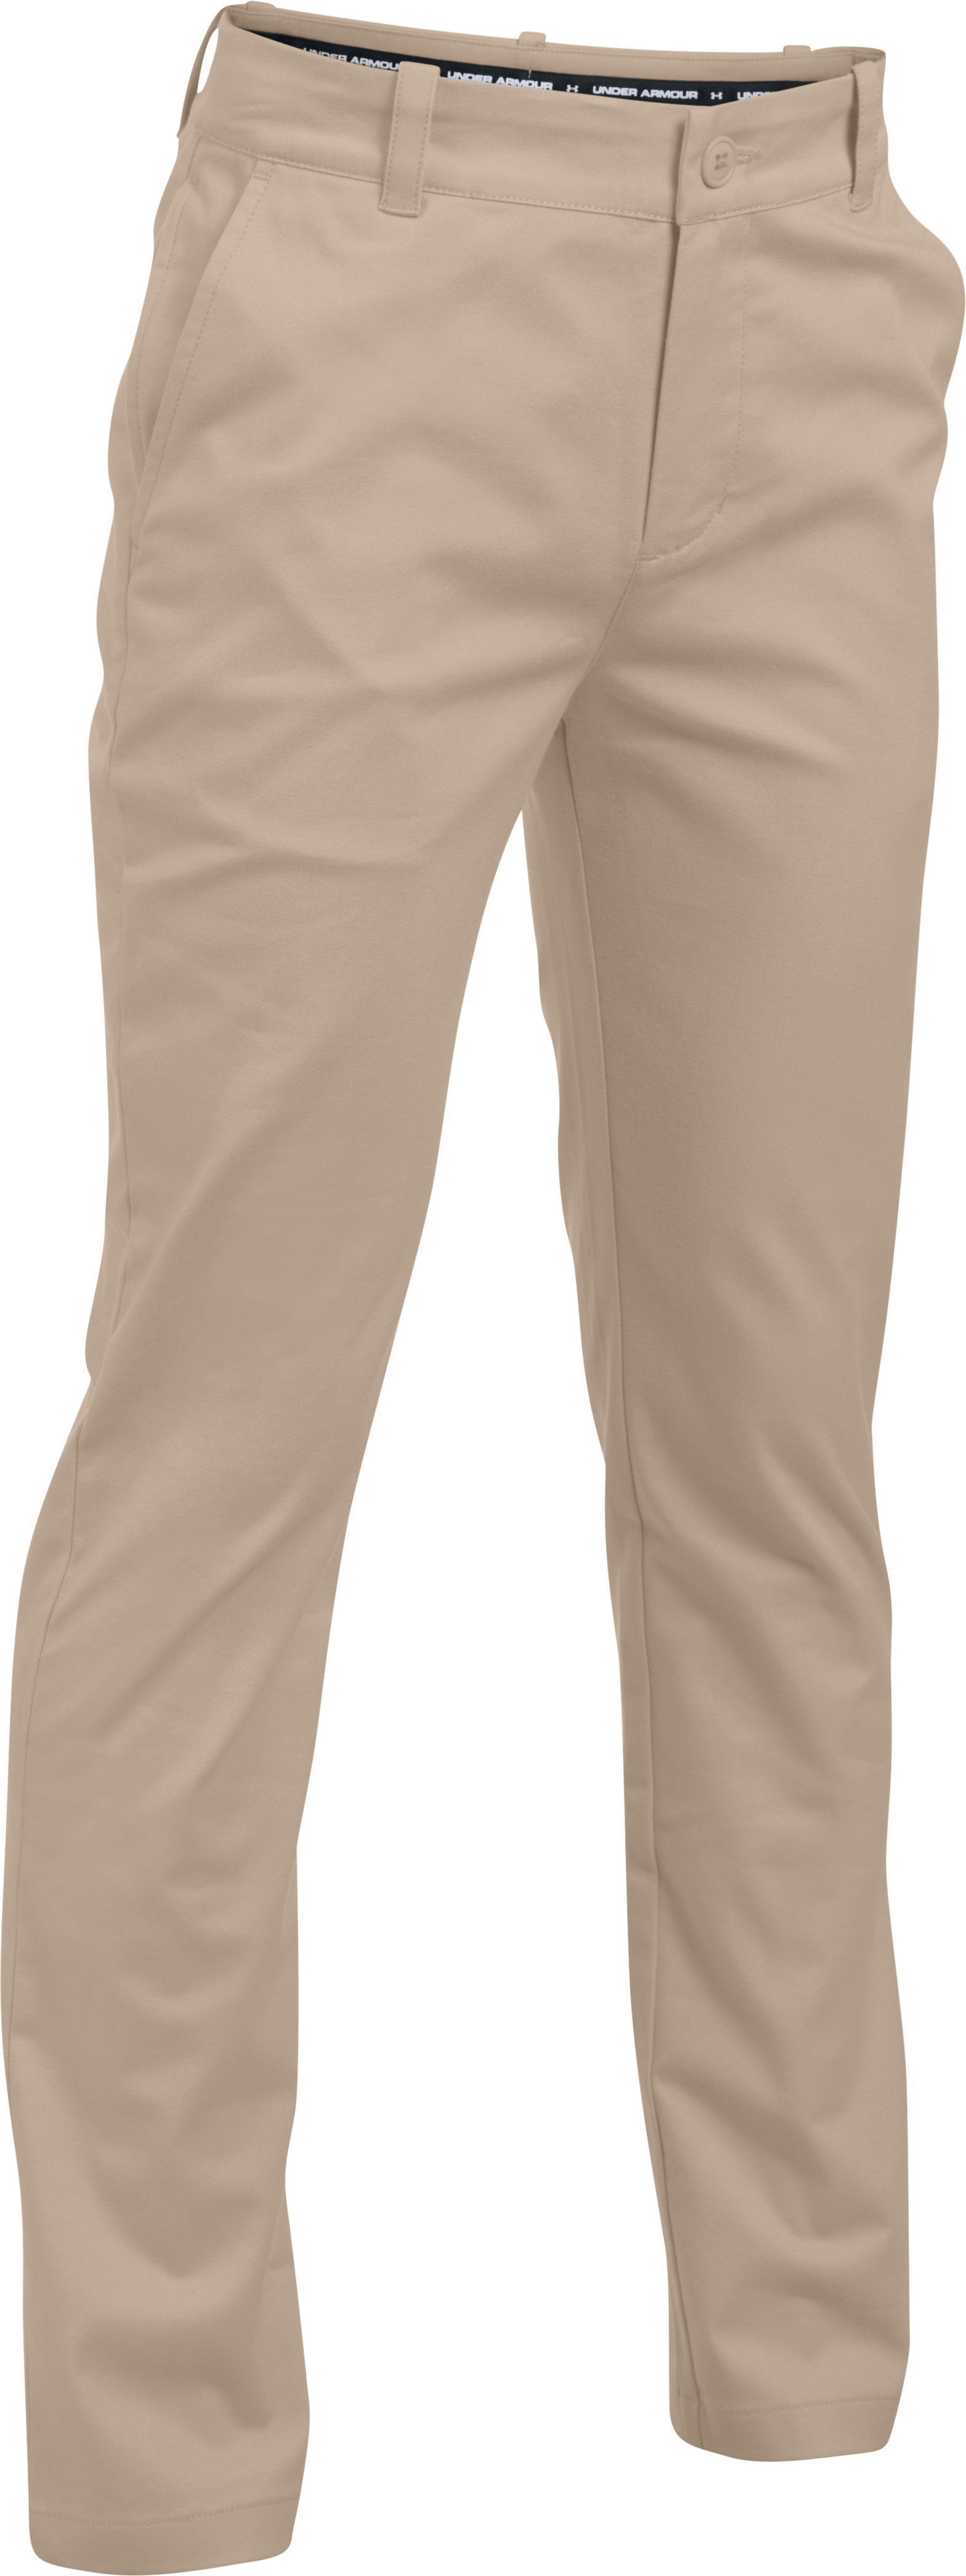 Boys' UA Uniform Chino Pants, Desert Sand